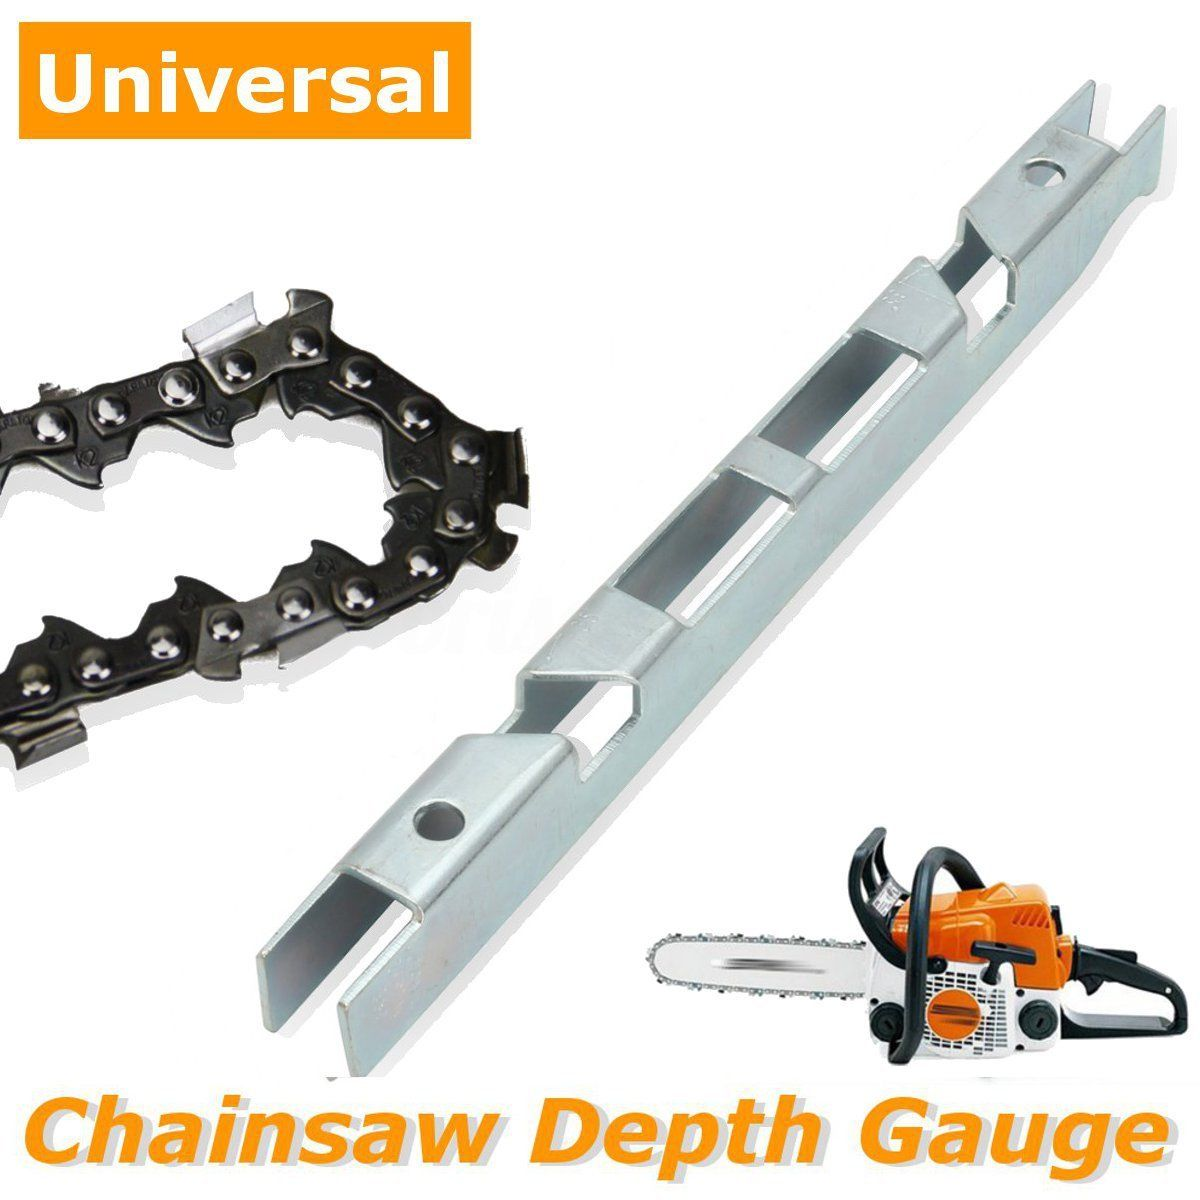 Universal Chainsaw Chain Depth Gauge File Guide Tool And Guide Bar Groove Cleaner Garden Tools